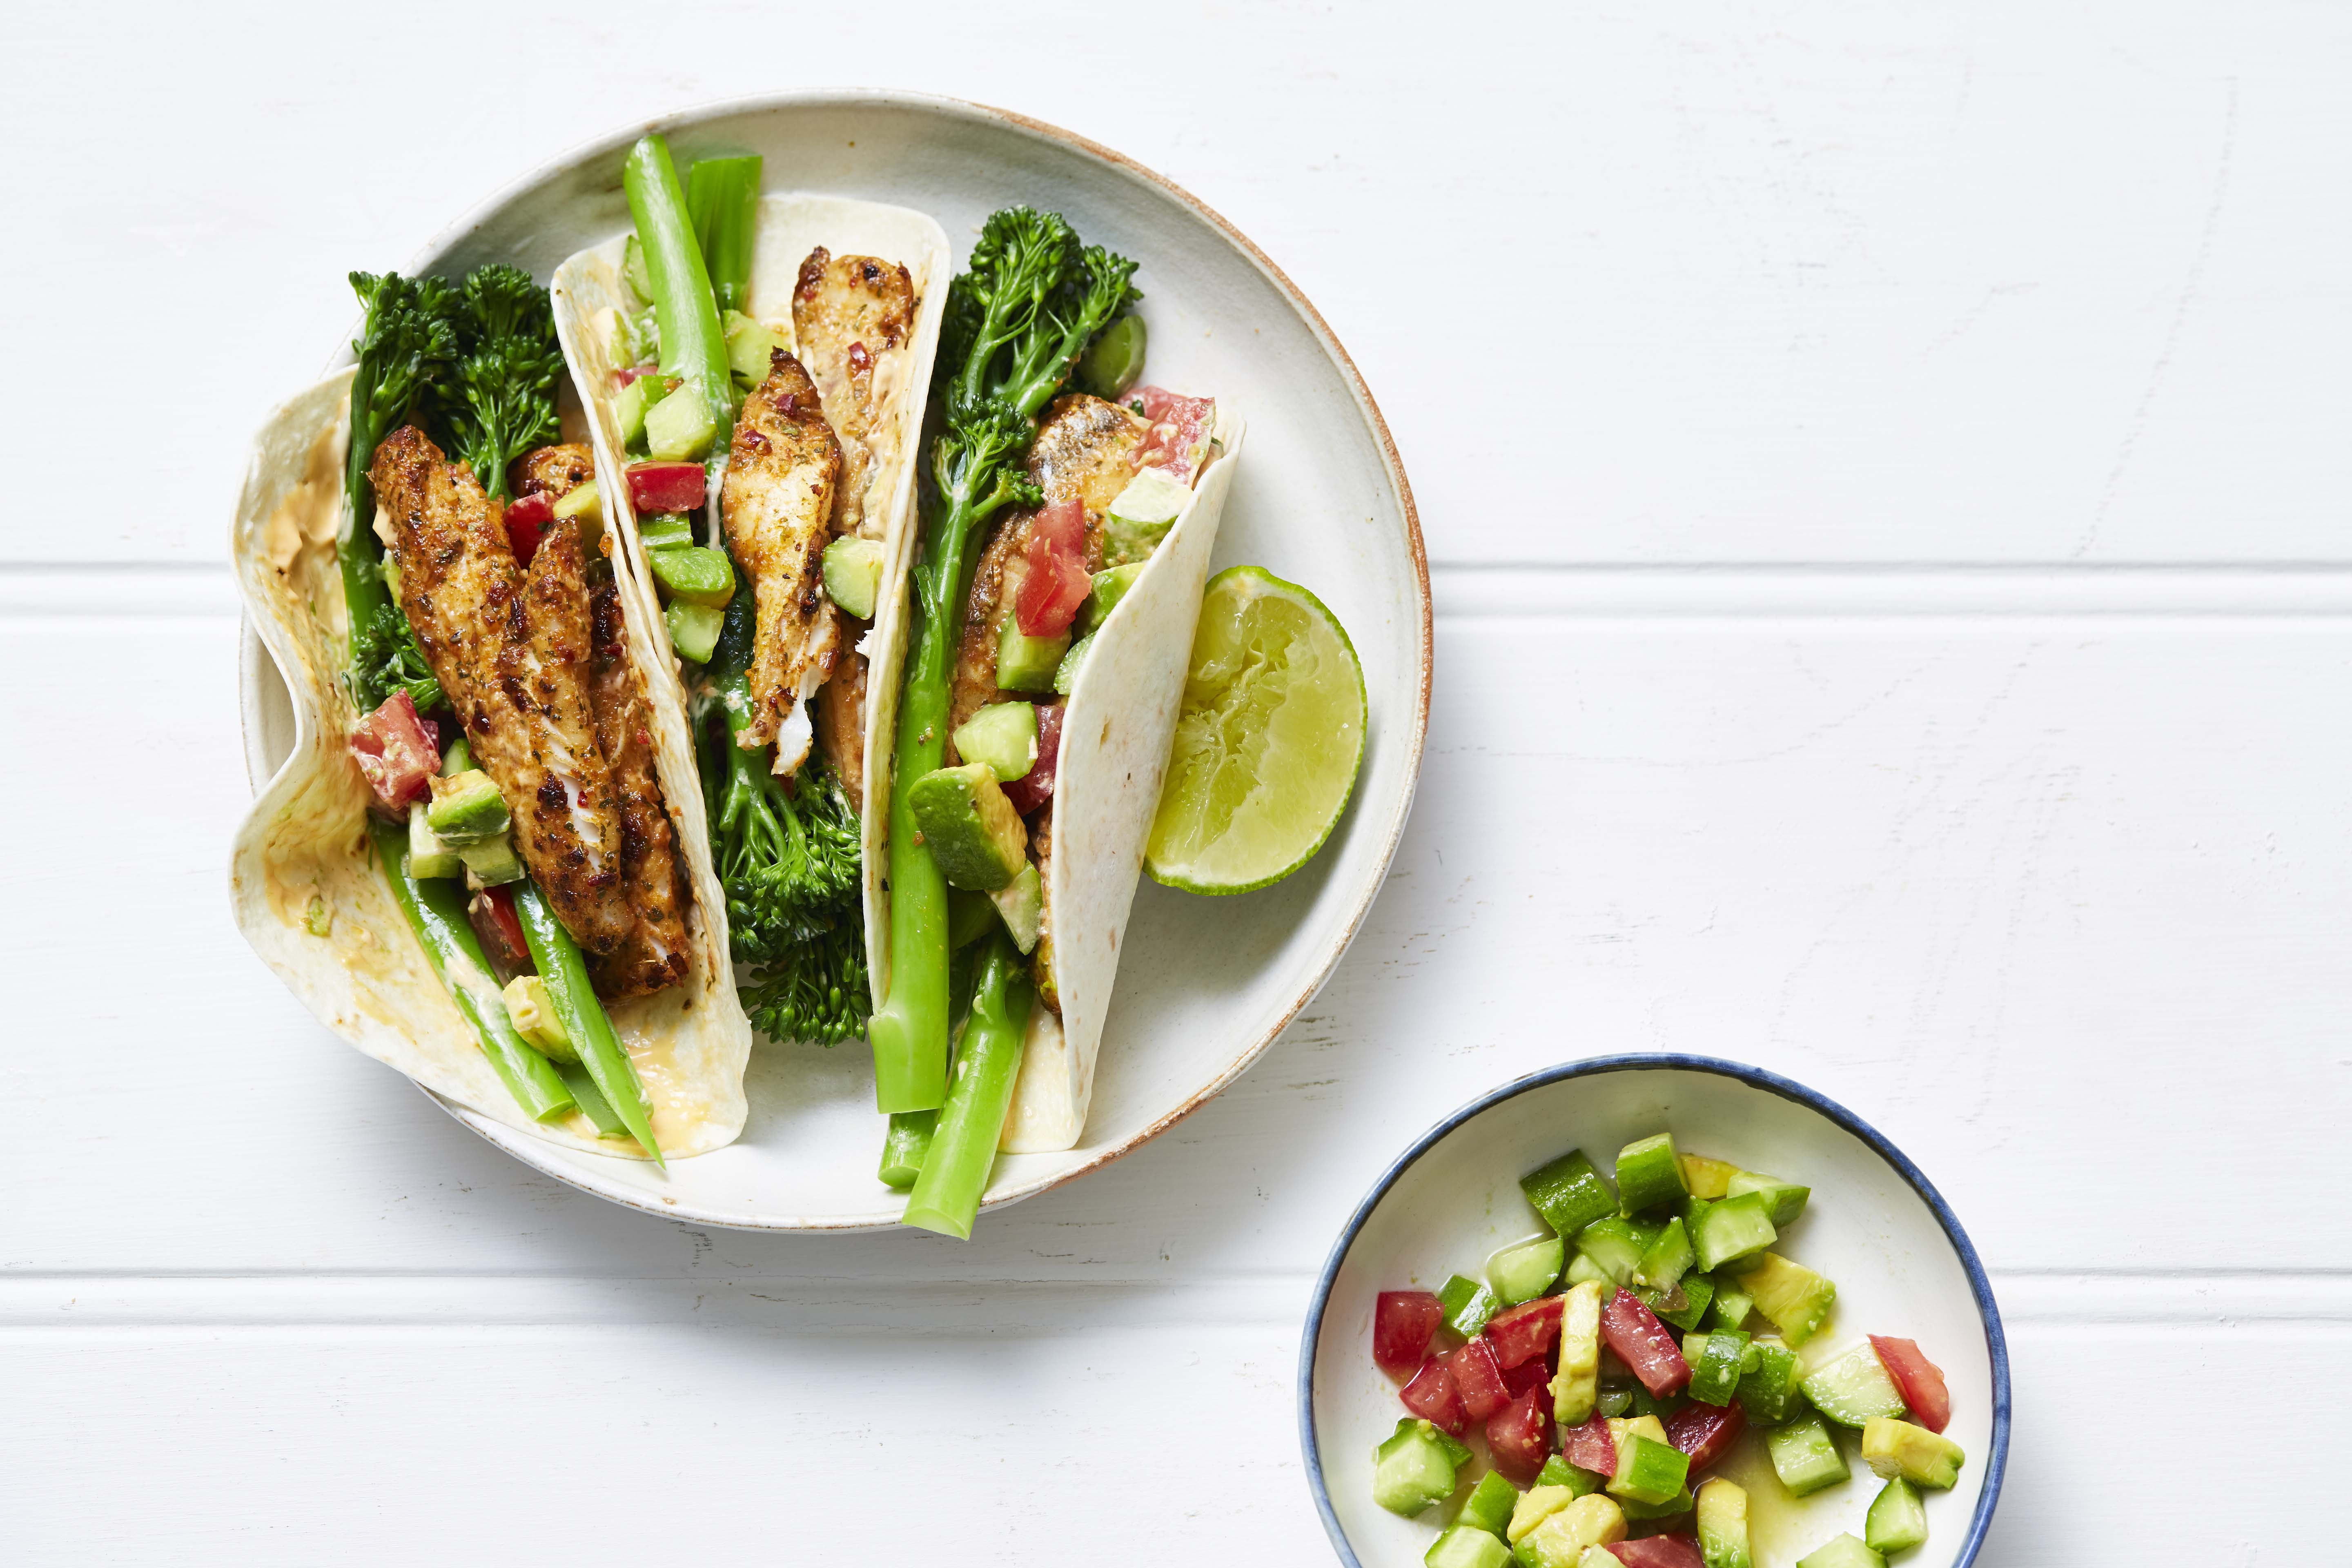 Recipe_LR_Broccolini_Spiced Fish Tacos_Janelle Bloom_2017_1-1